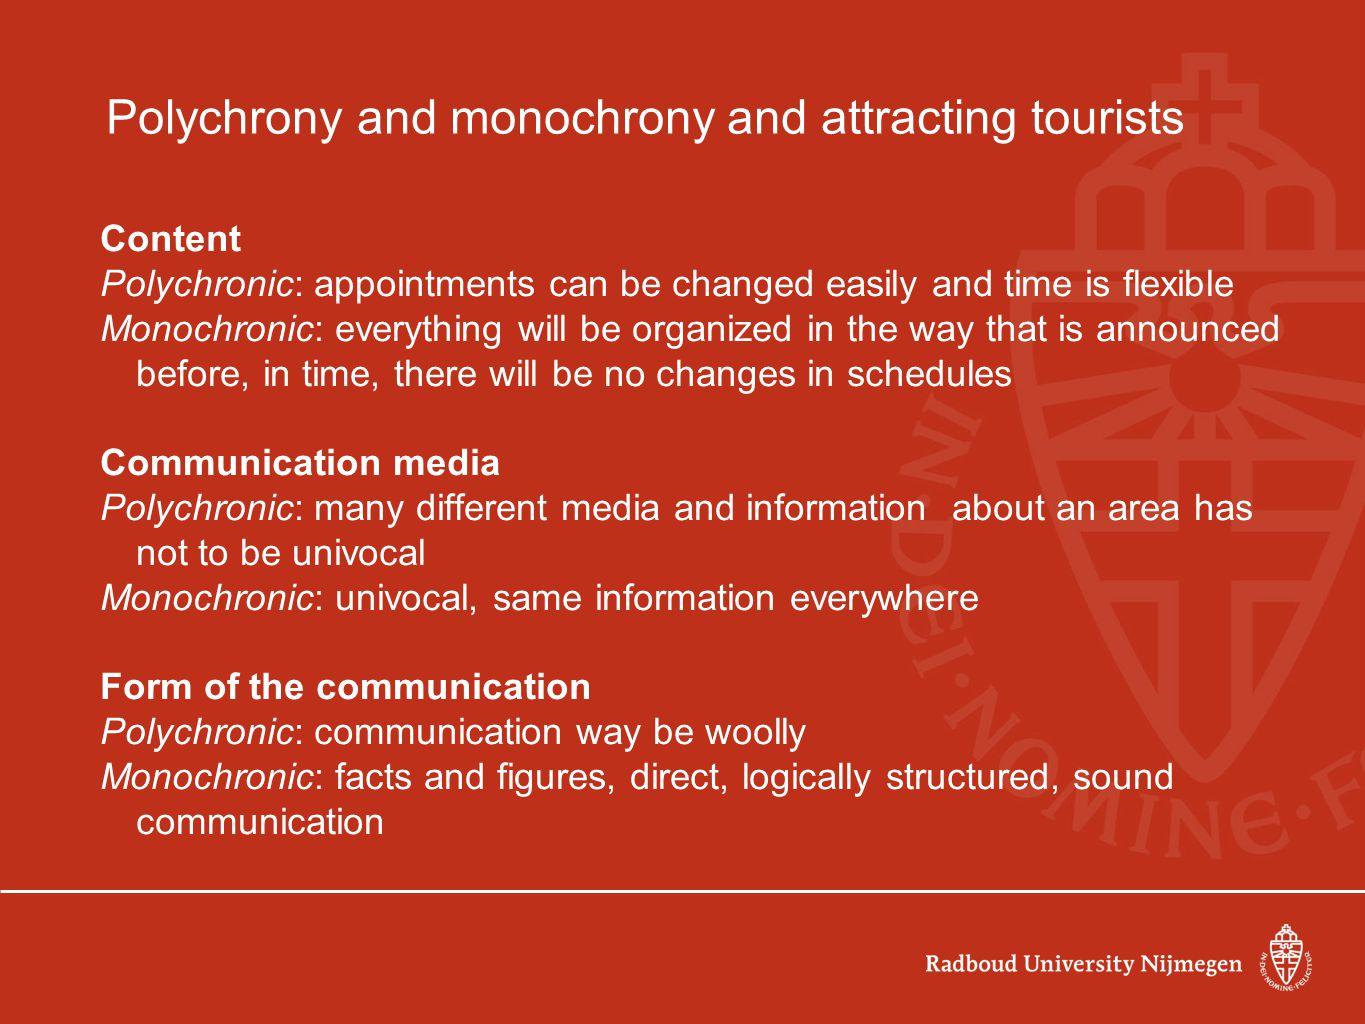 Polychrony and monochrony and attracting tourists